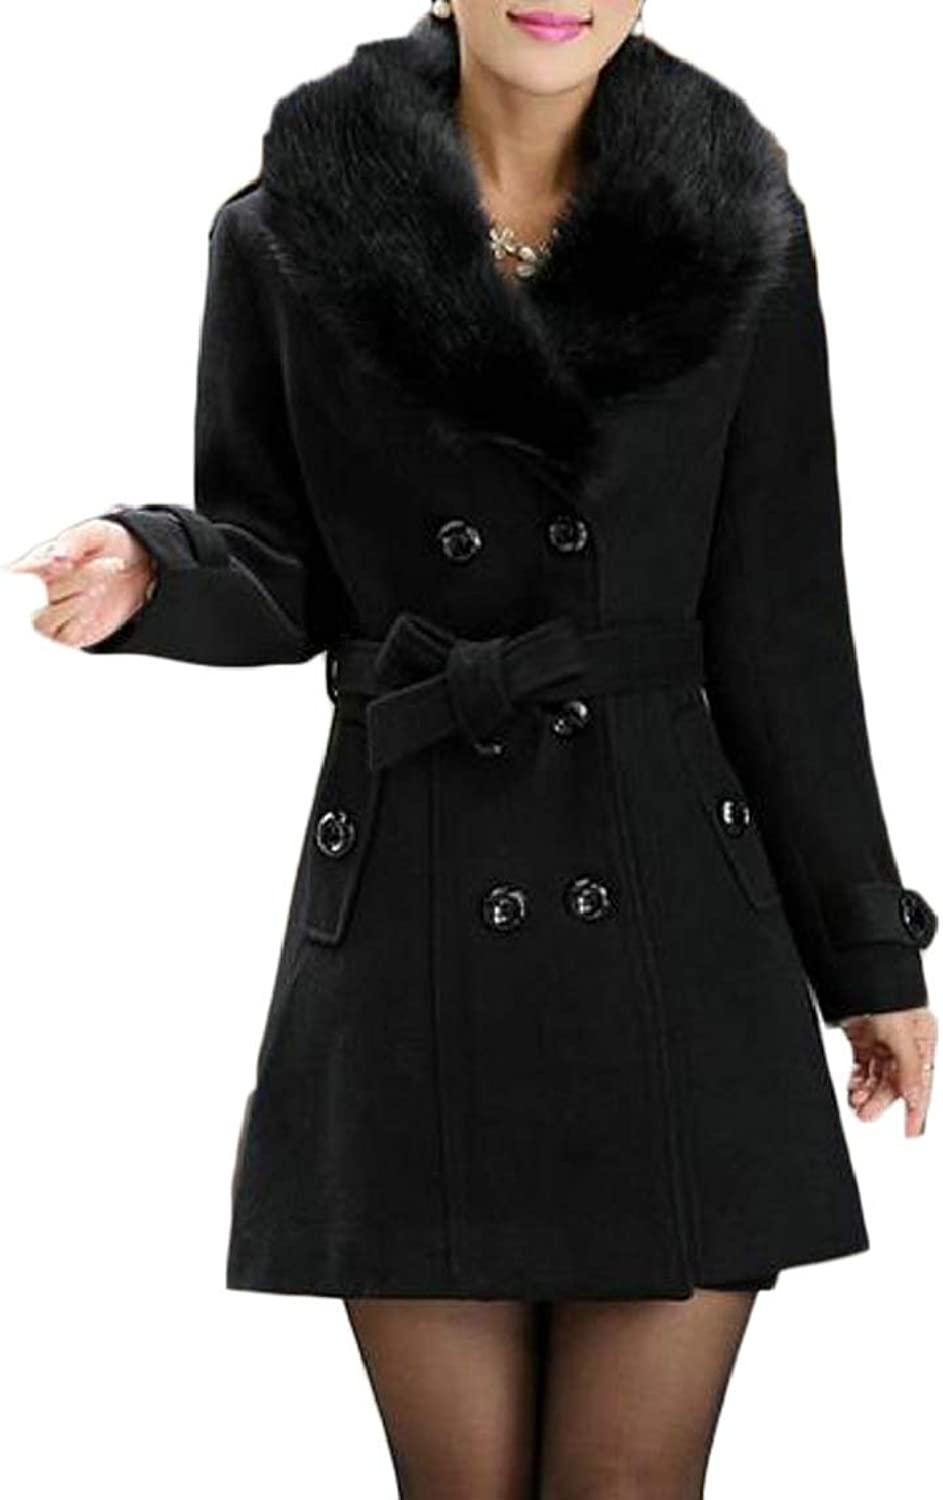 QDCACA Women's DoubleBreasted Slim Solid WoolBlend Solid Pea Coats